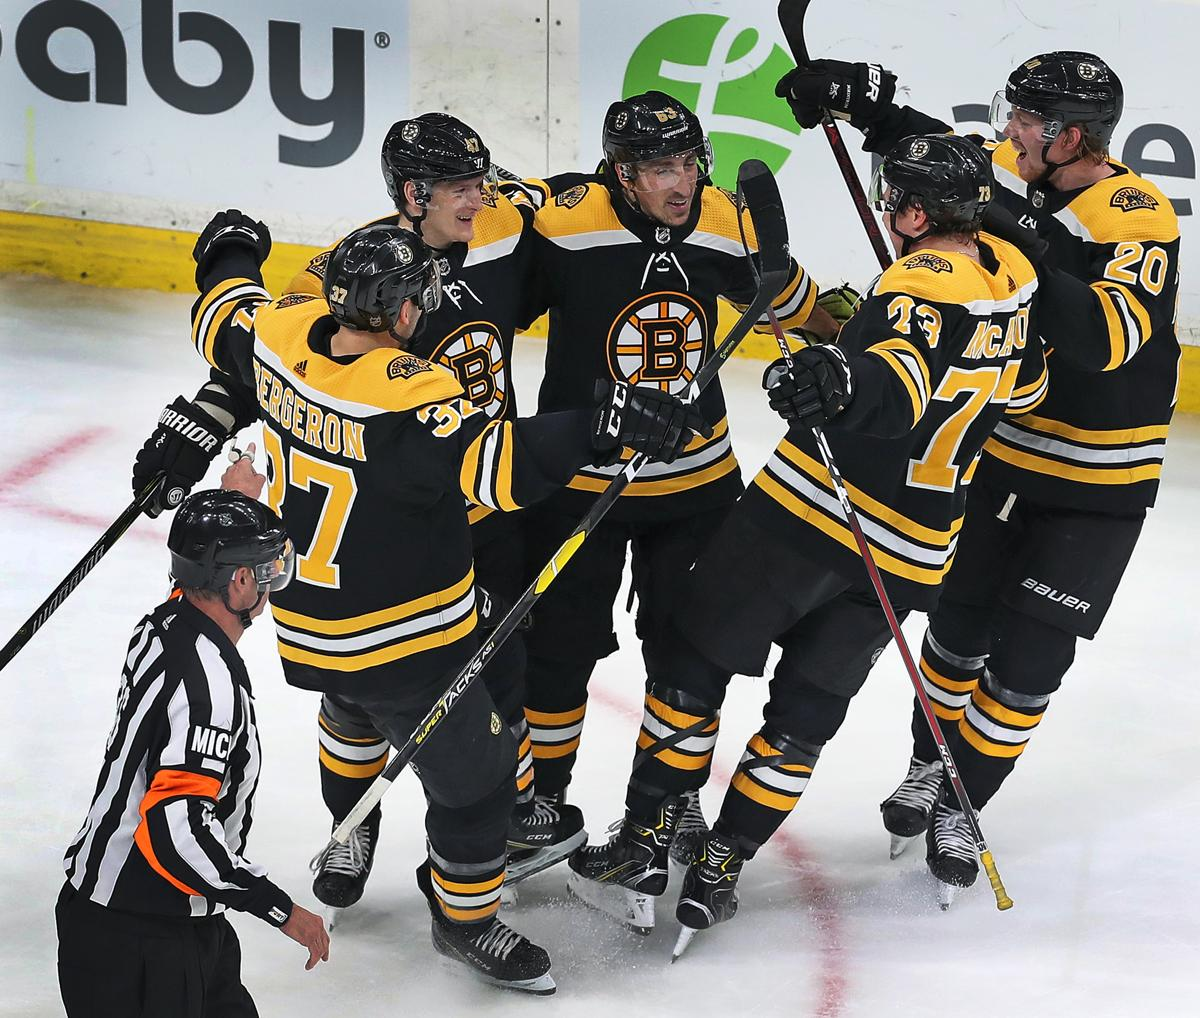 ffea5631f Bruins beat Avalanche in overtime